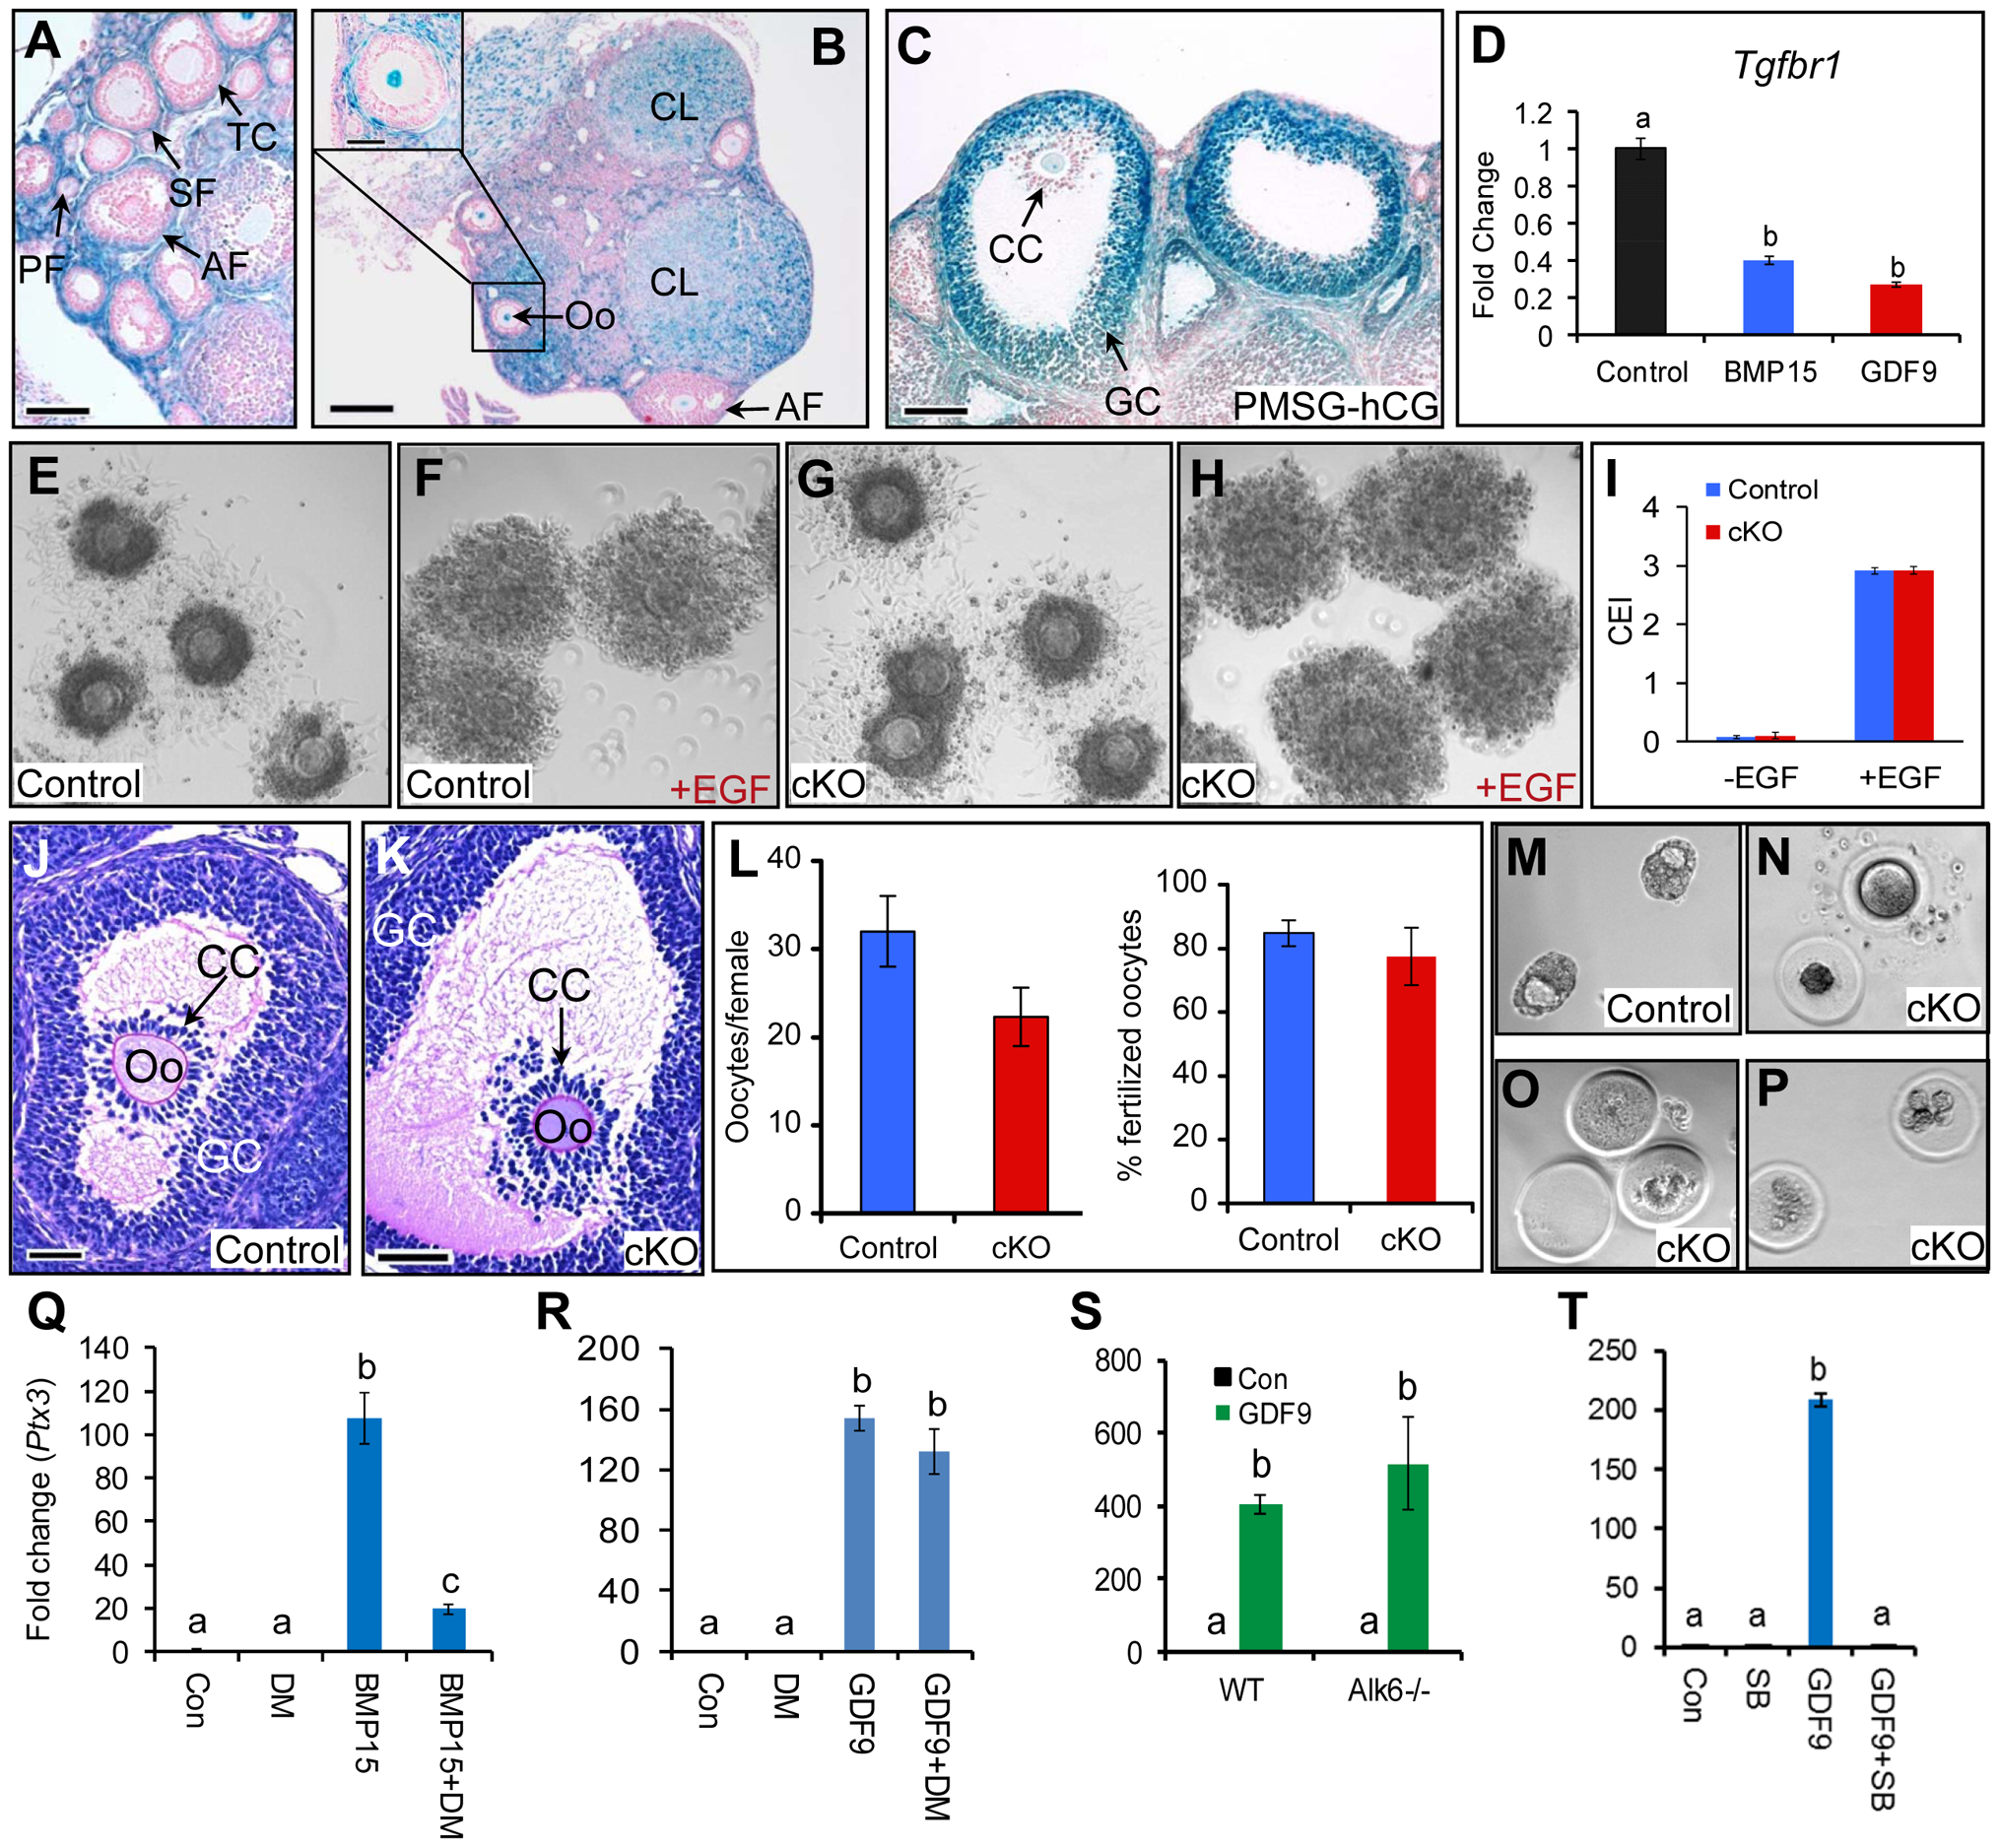 Cellular distribution and functional characterization of TGFBR1 in mouse ovary.